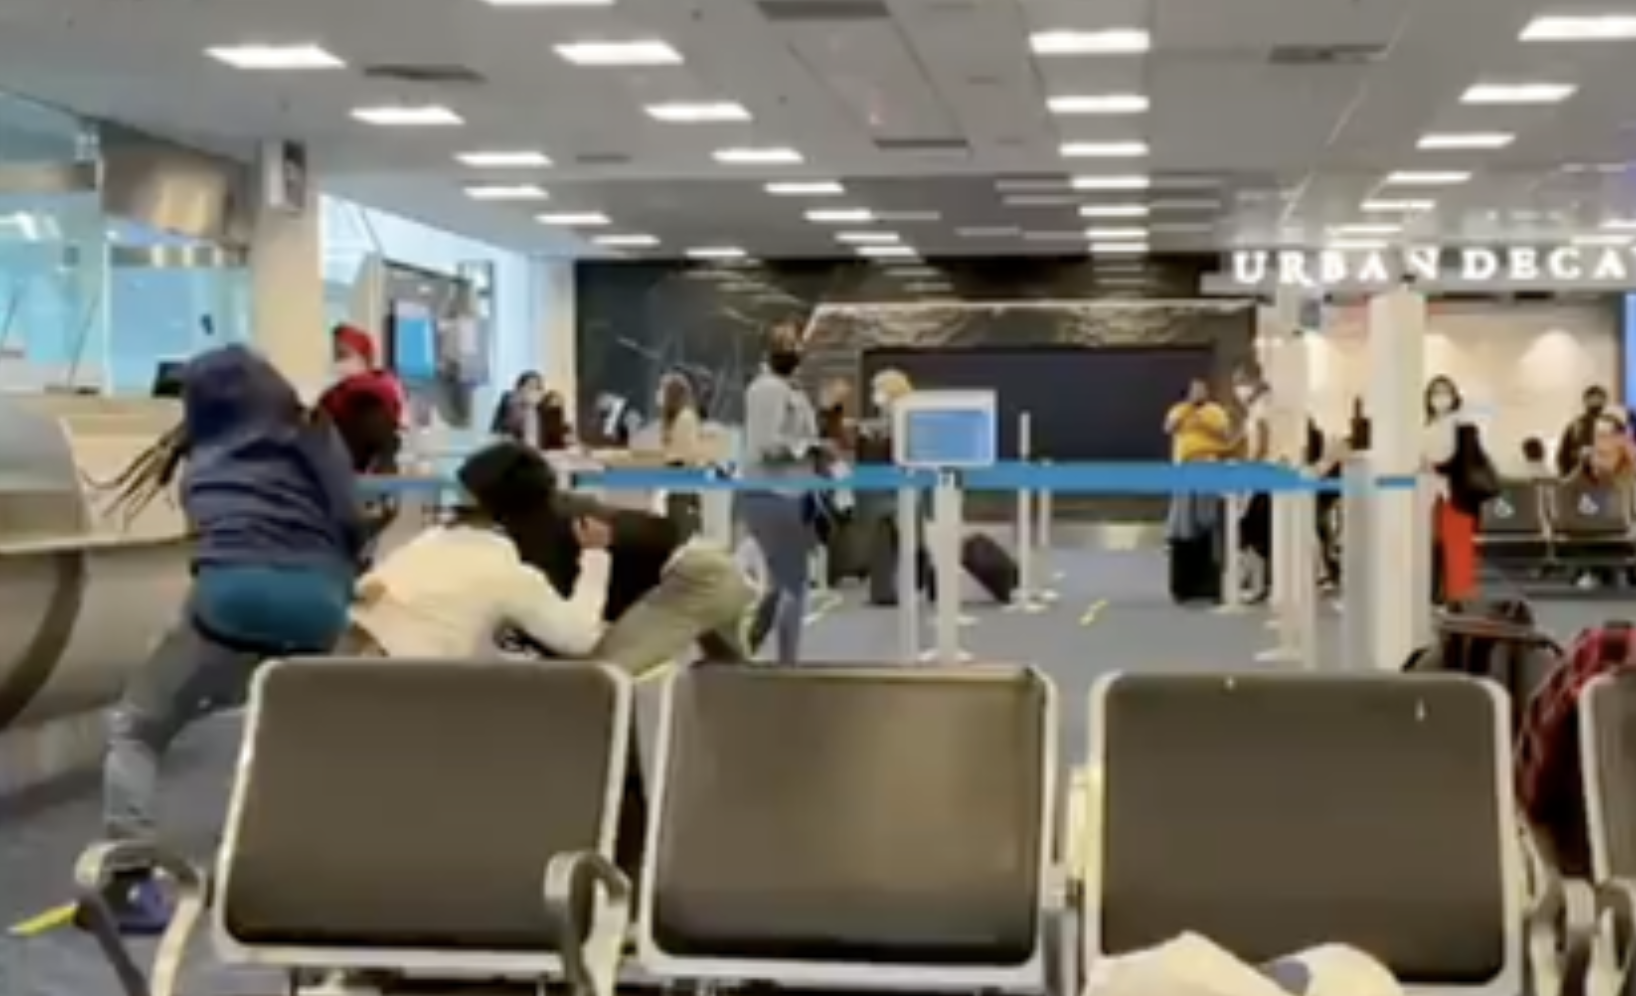 Incident: Fist fights break out at Miami International Airport gate D14